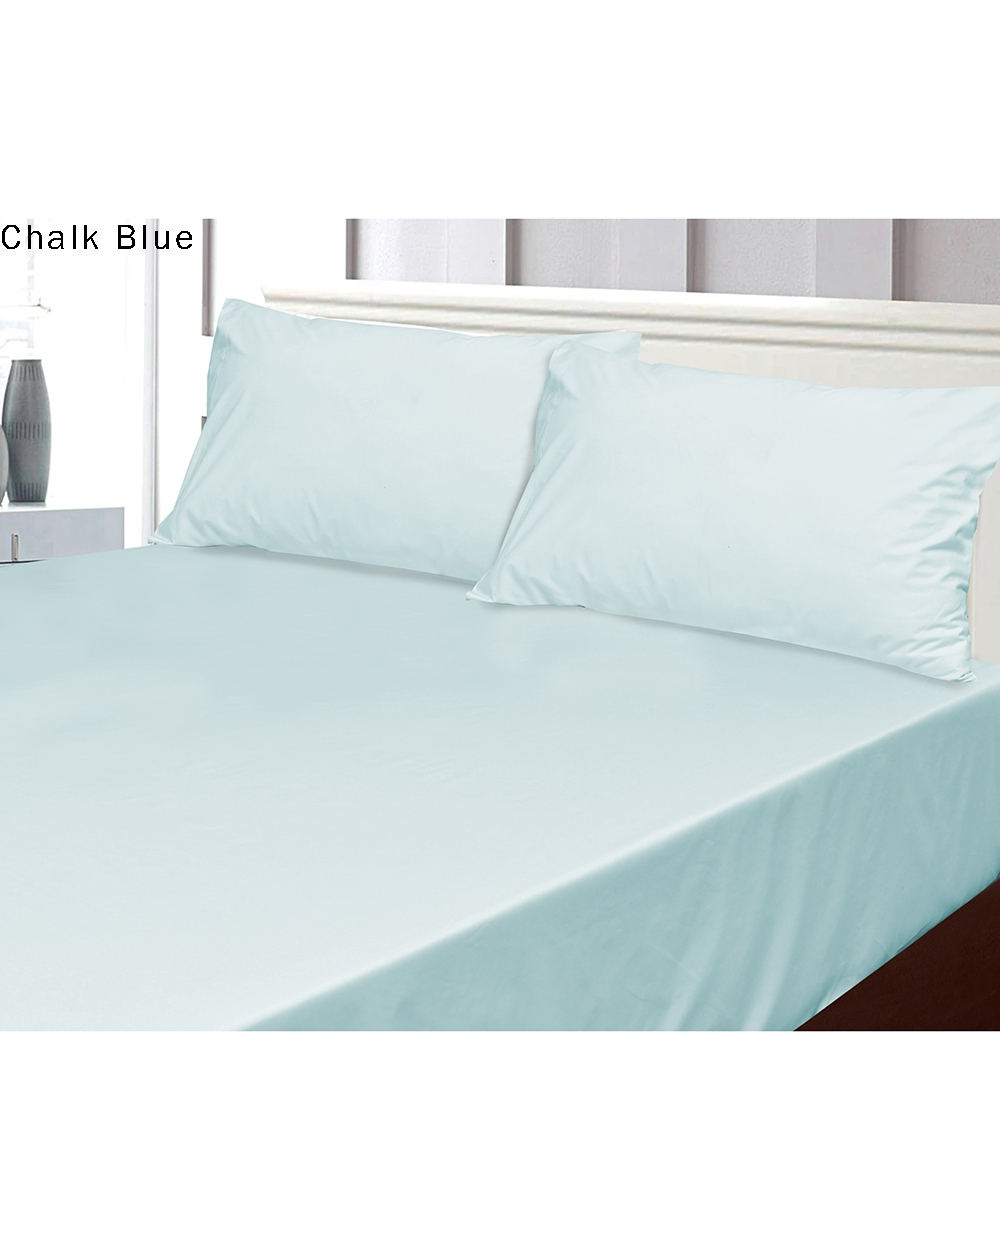 Chalk Blue fitted sheet